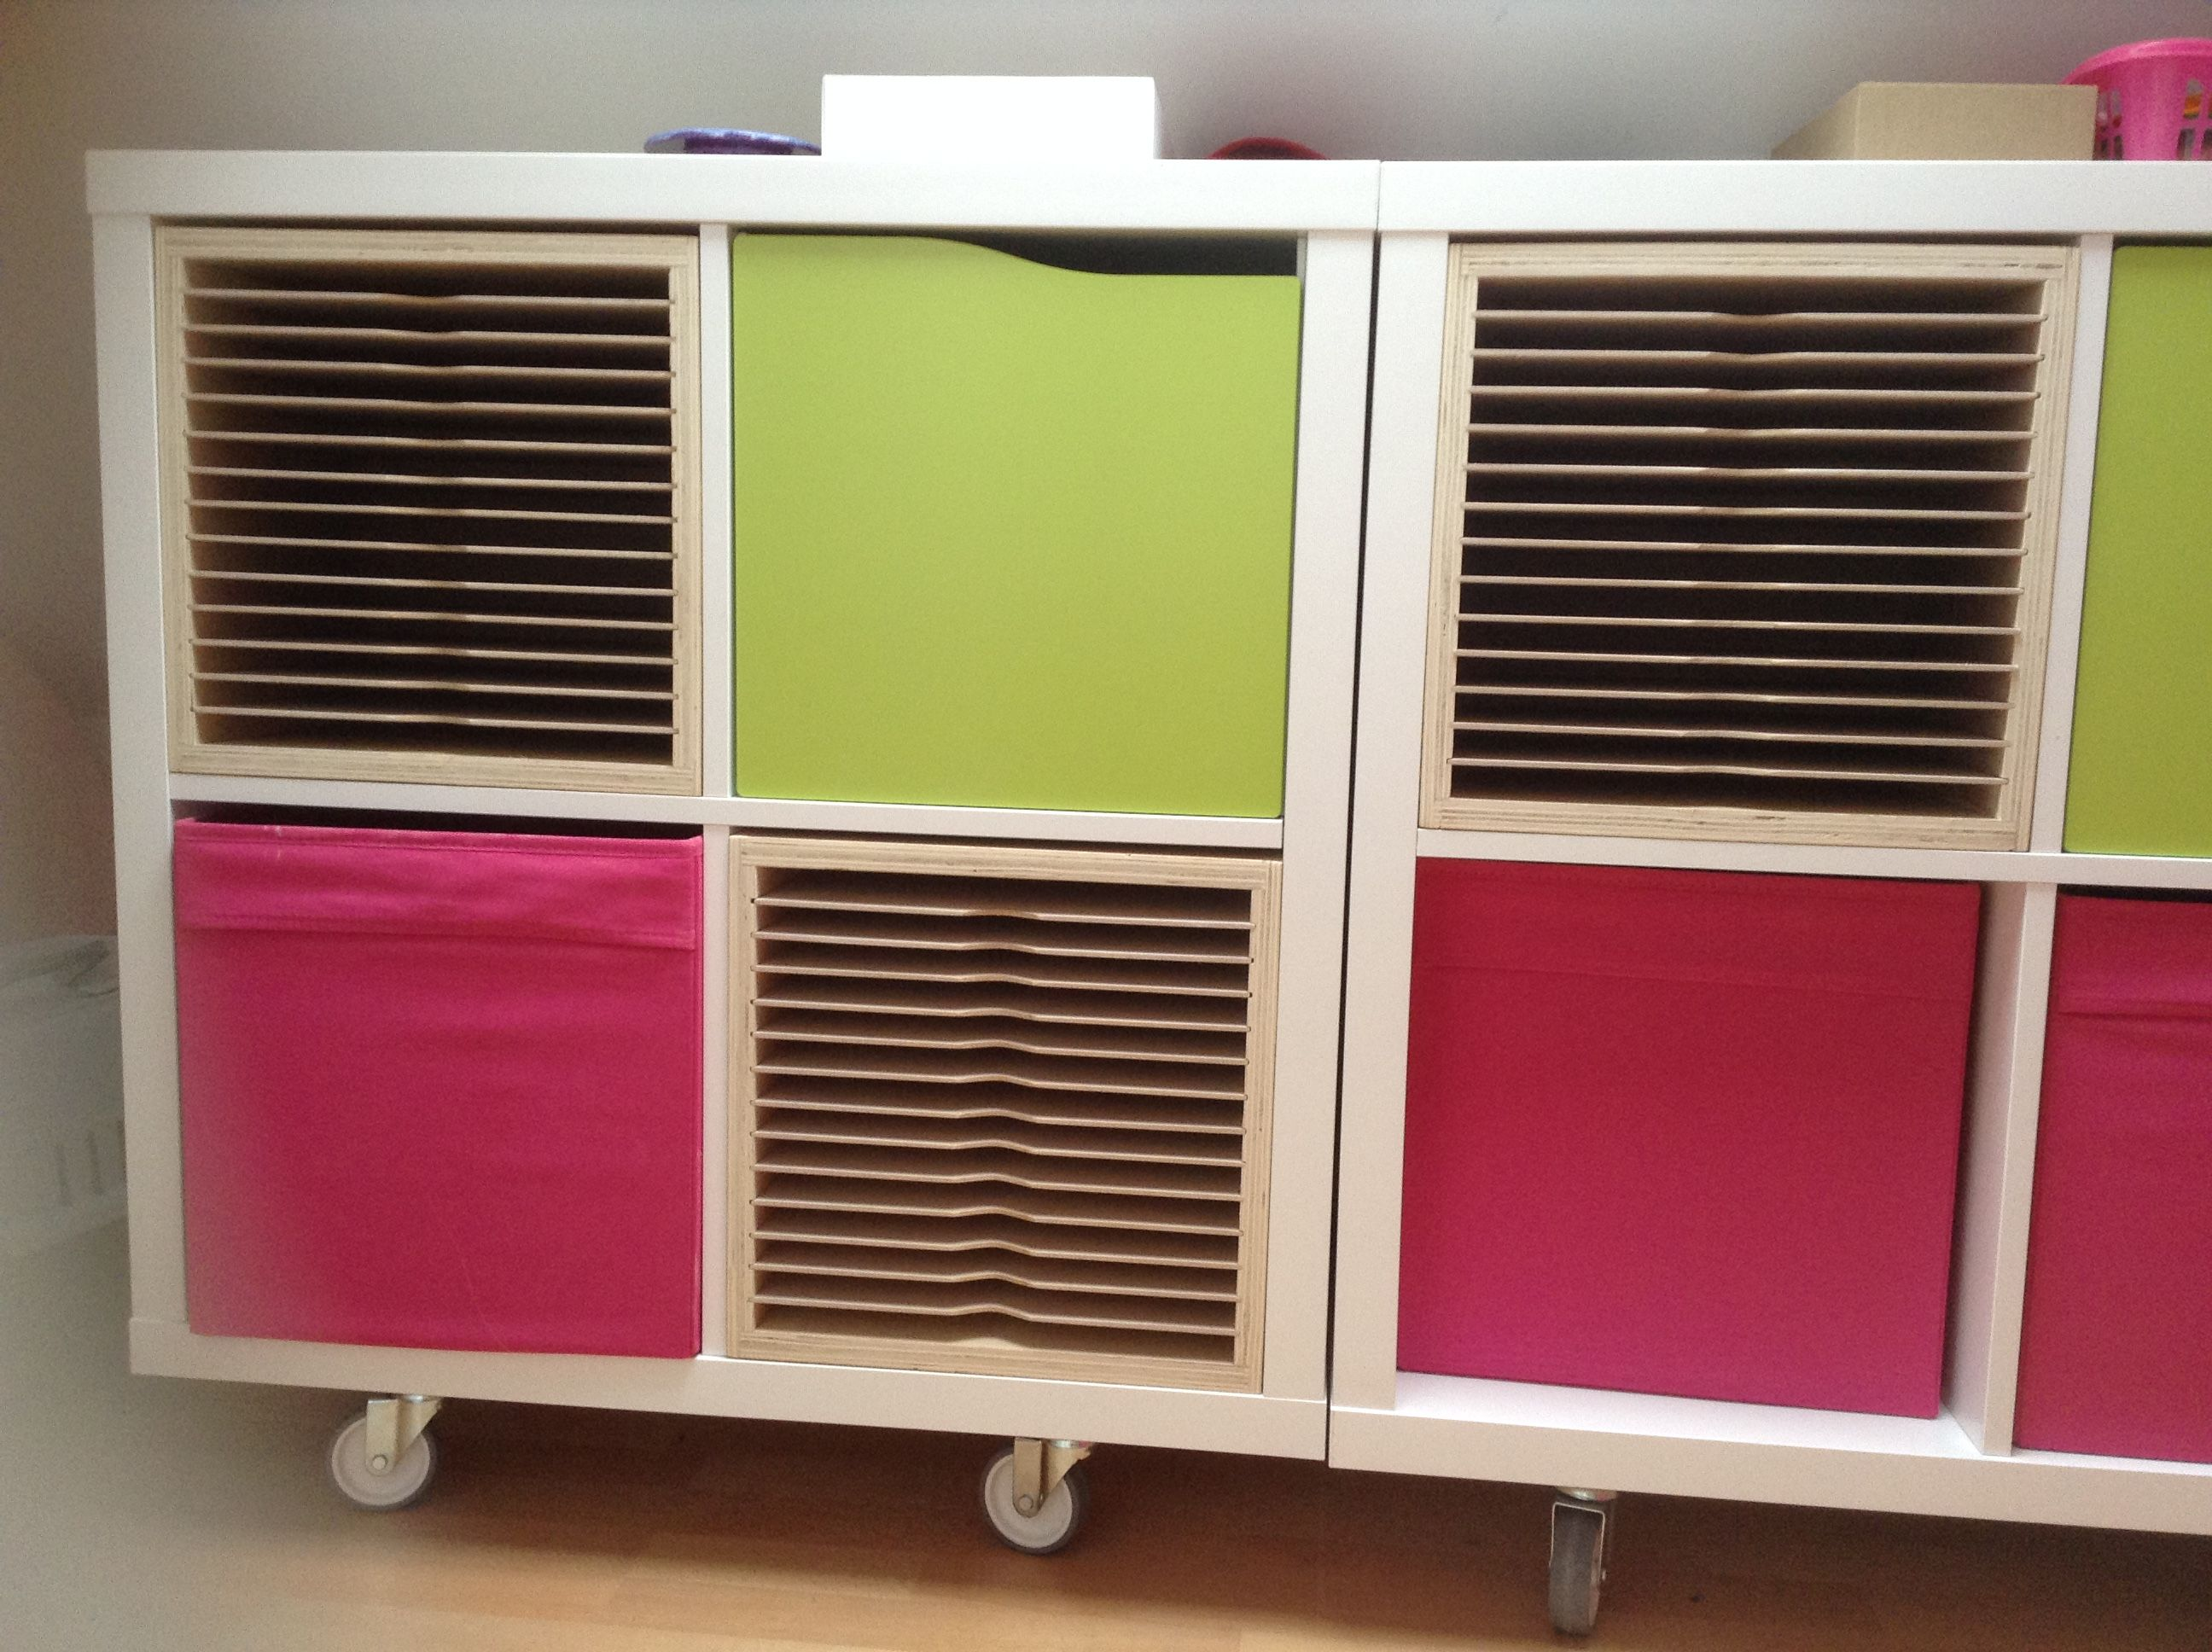 My New A4 Paper Storage For Ikea Kalax Furniture. Check Me Out On Ebay And